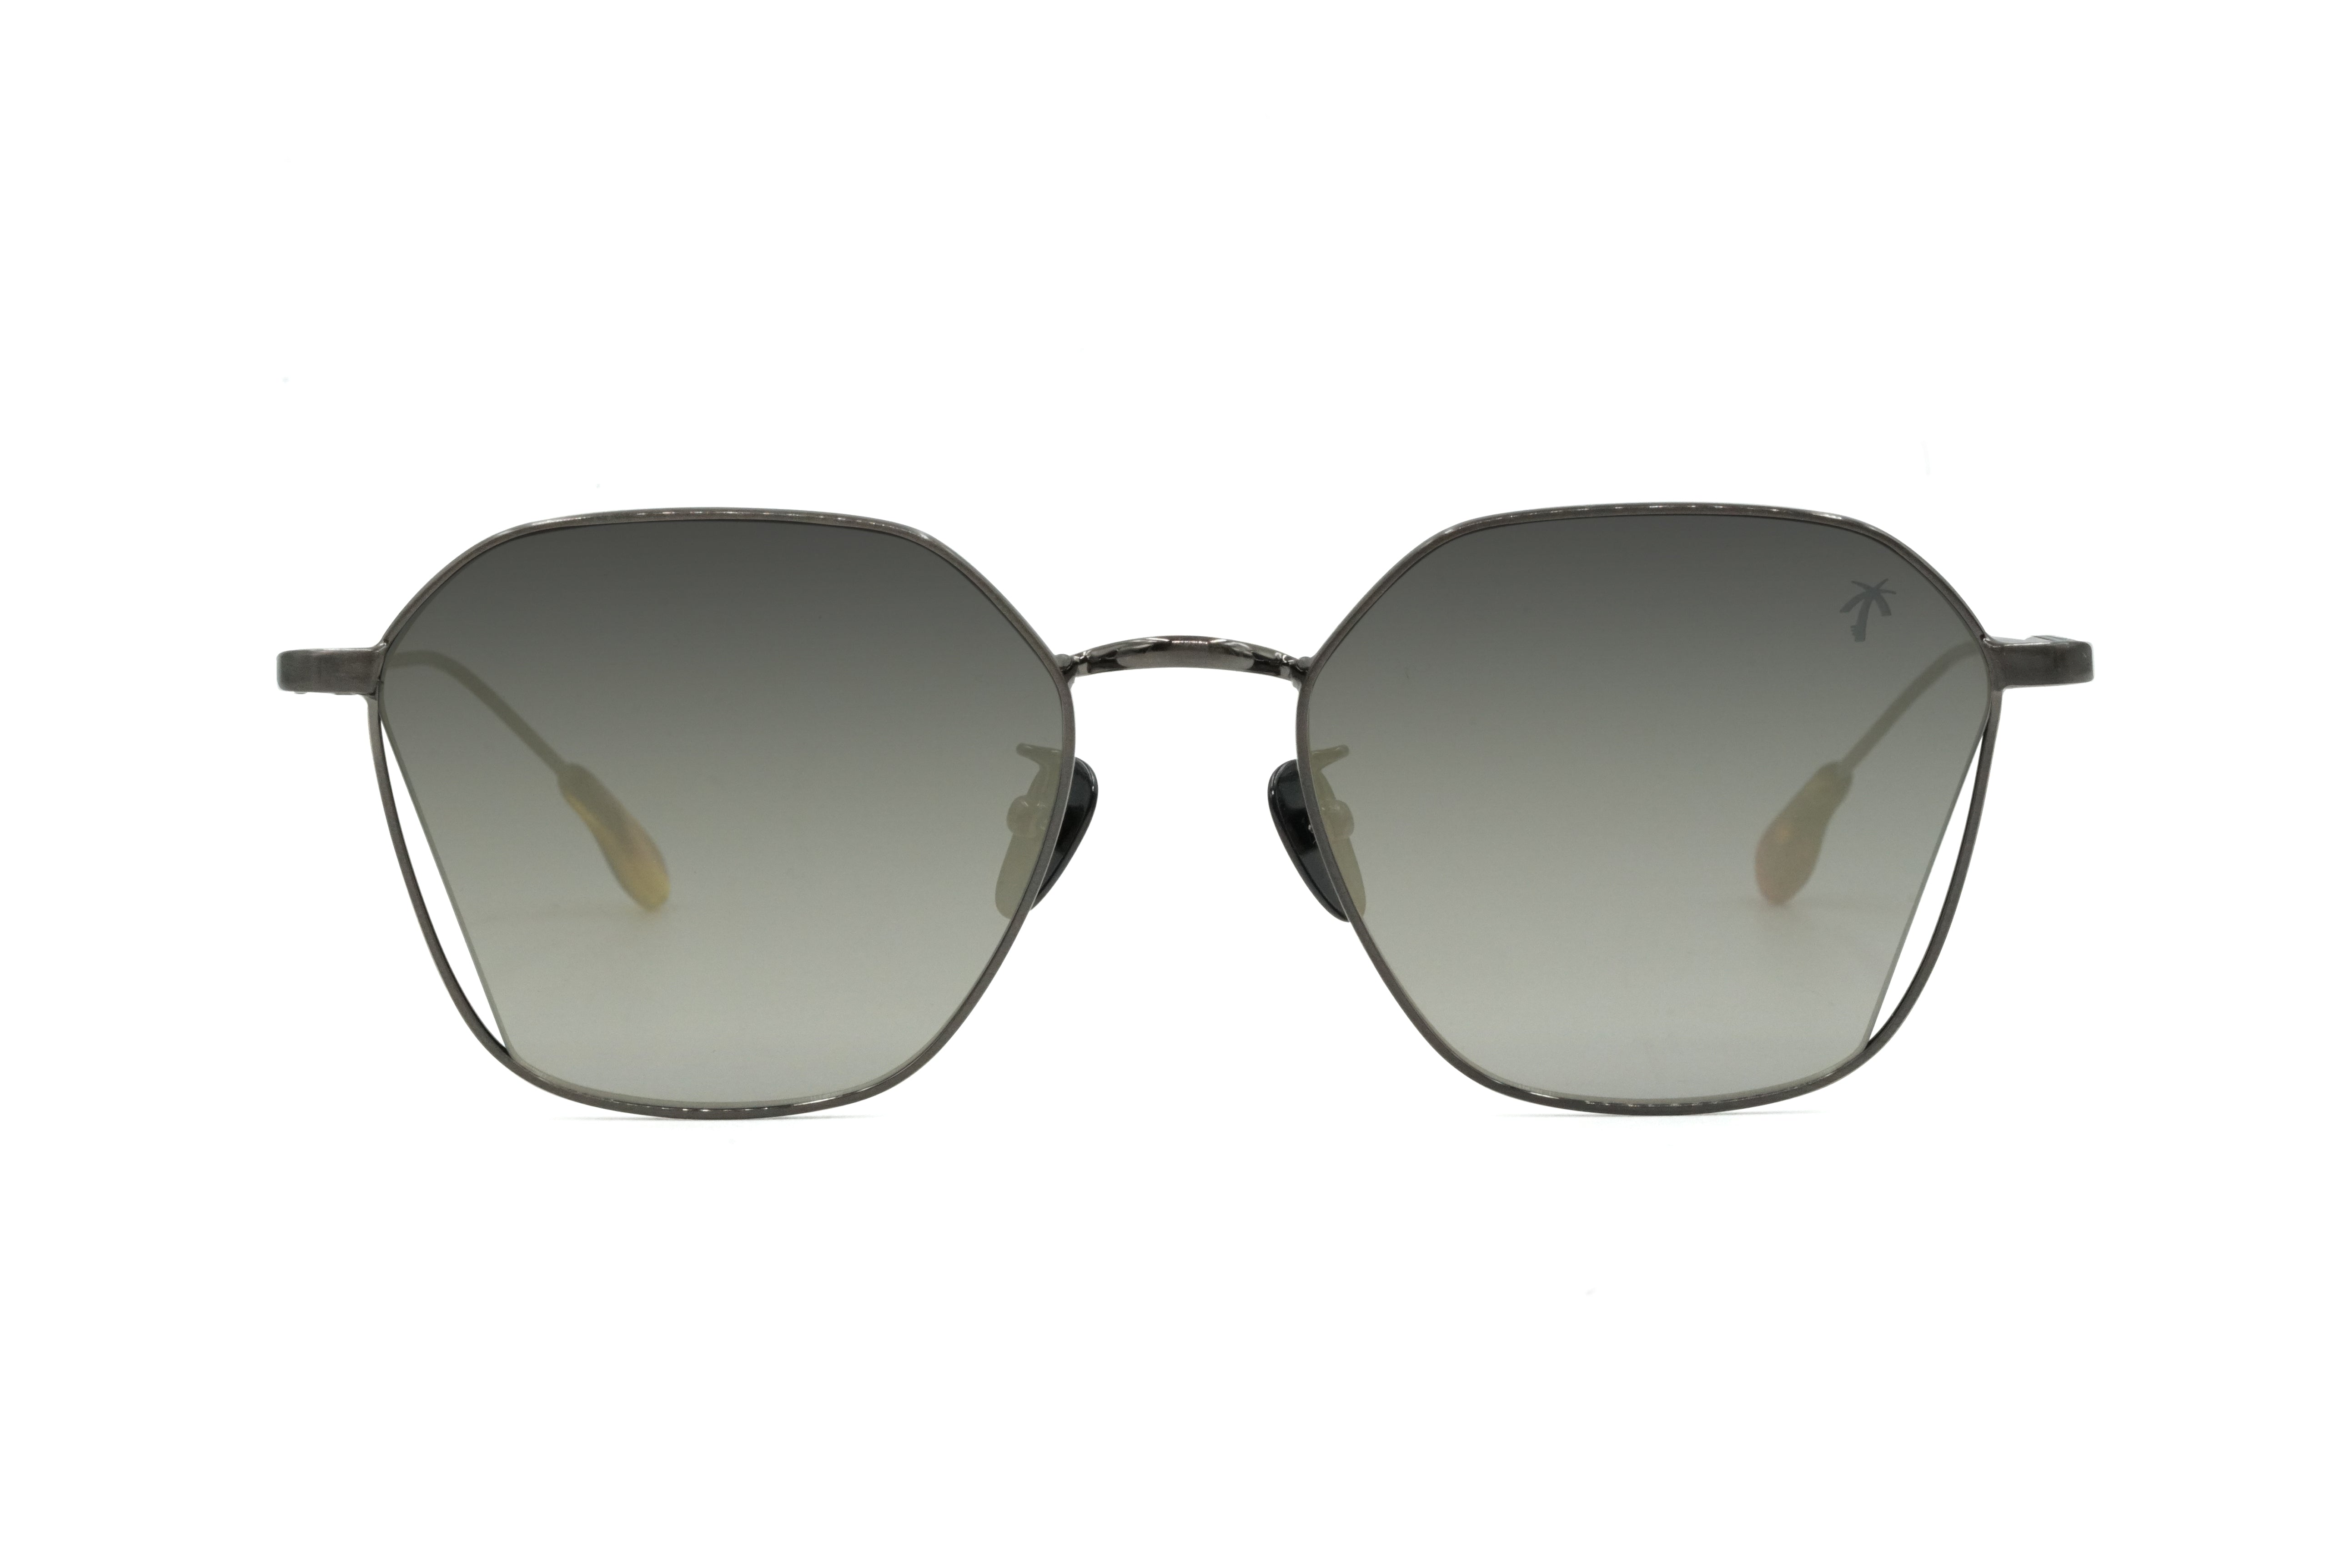 Slauson II in Black Gun Metal Frame - Peppertint - Designer sunglasses